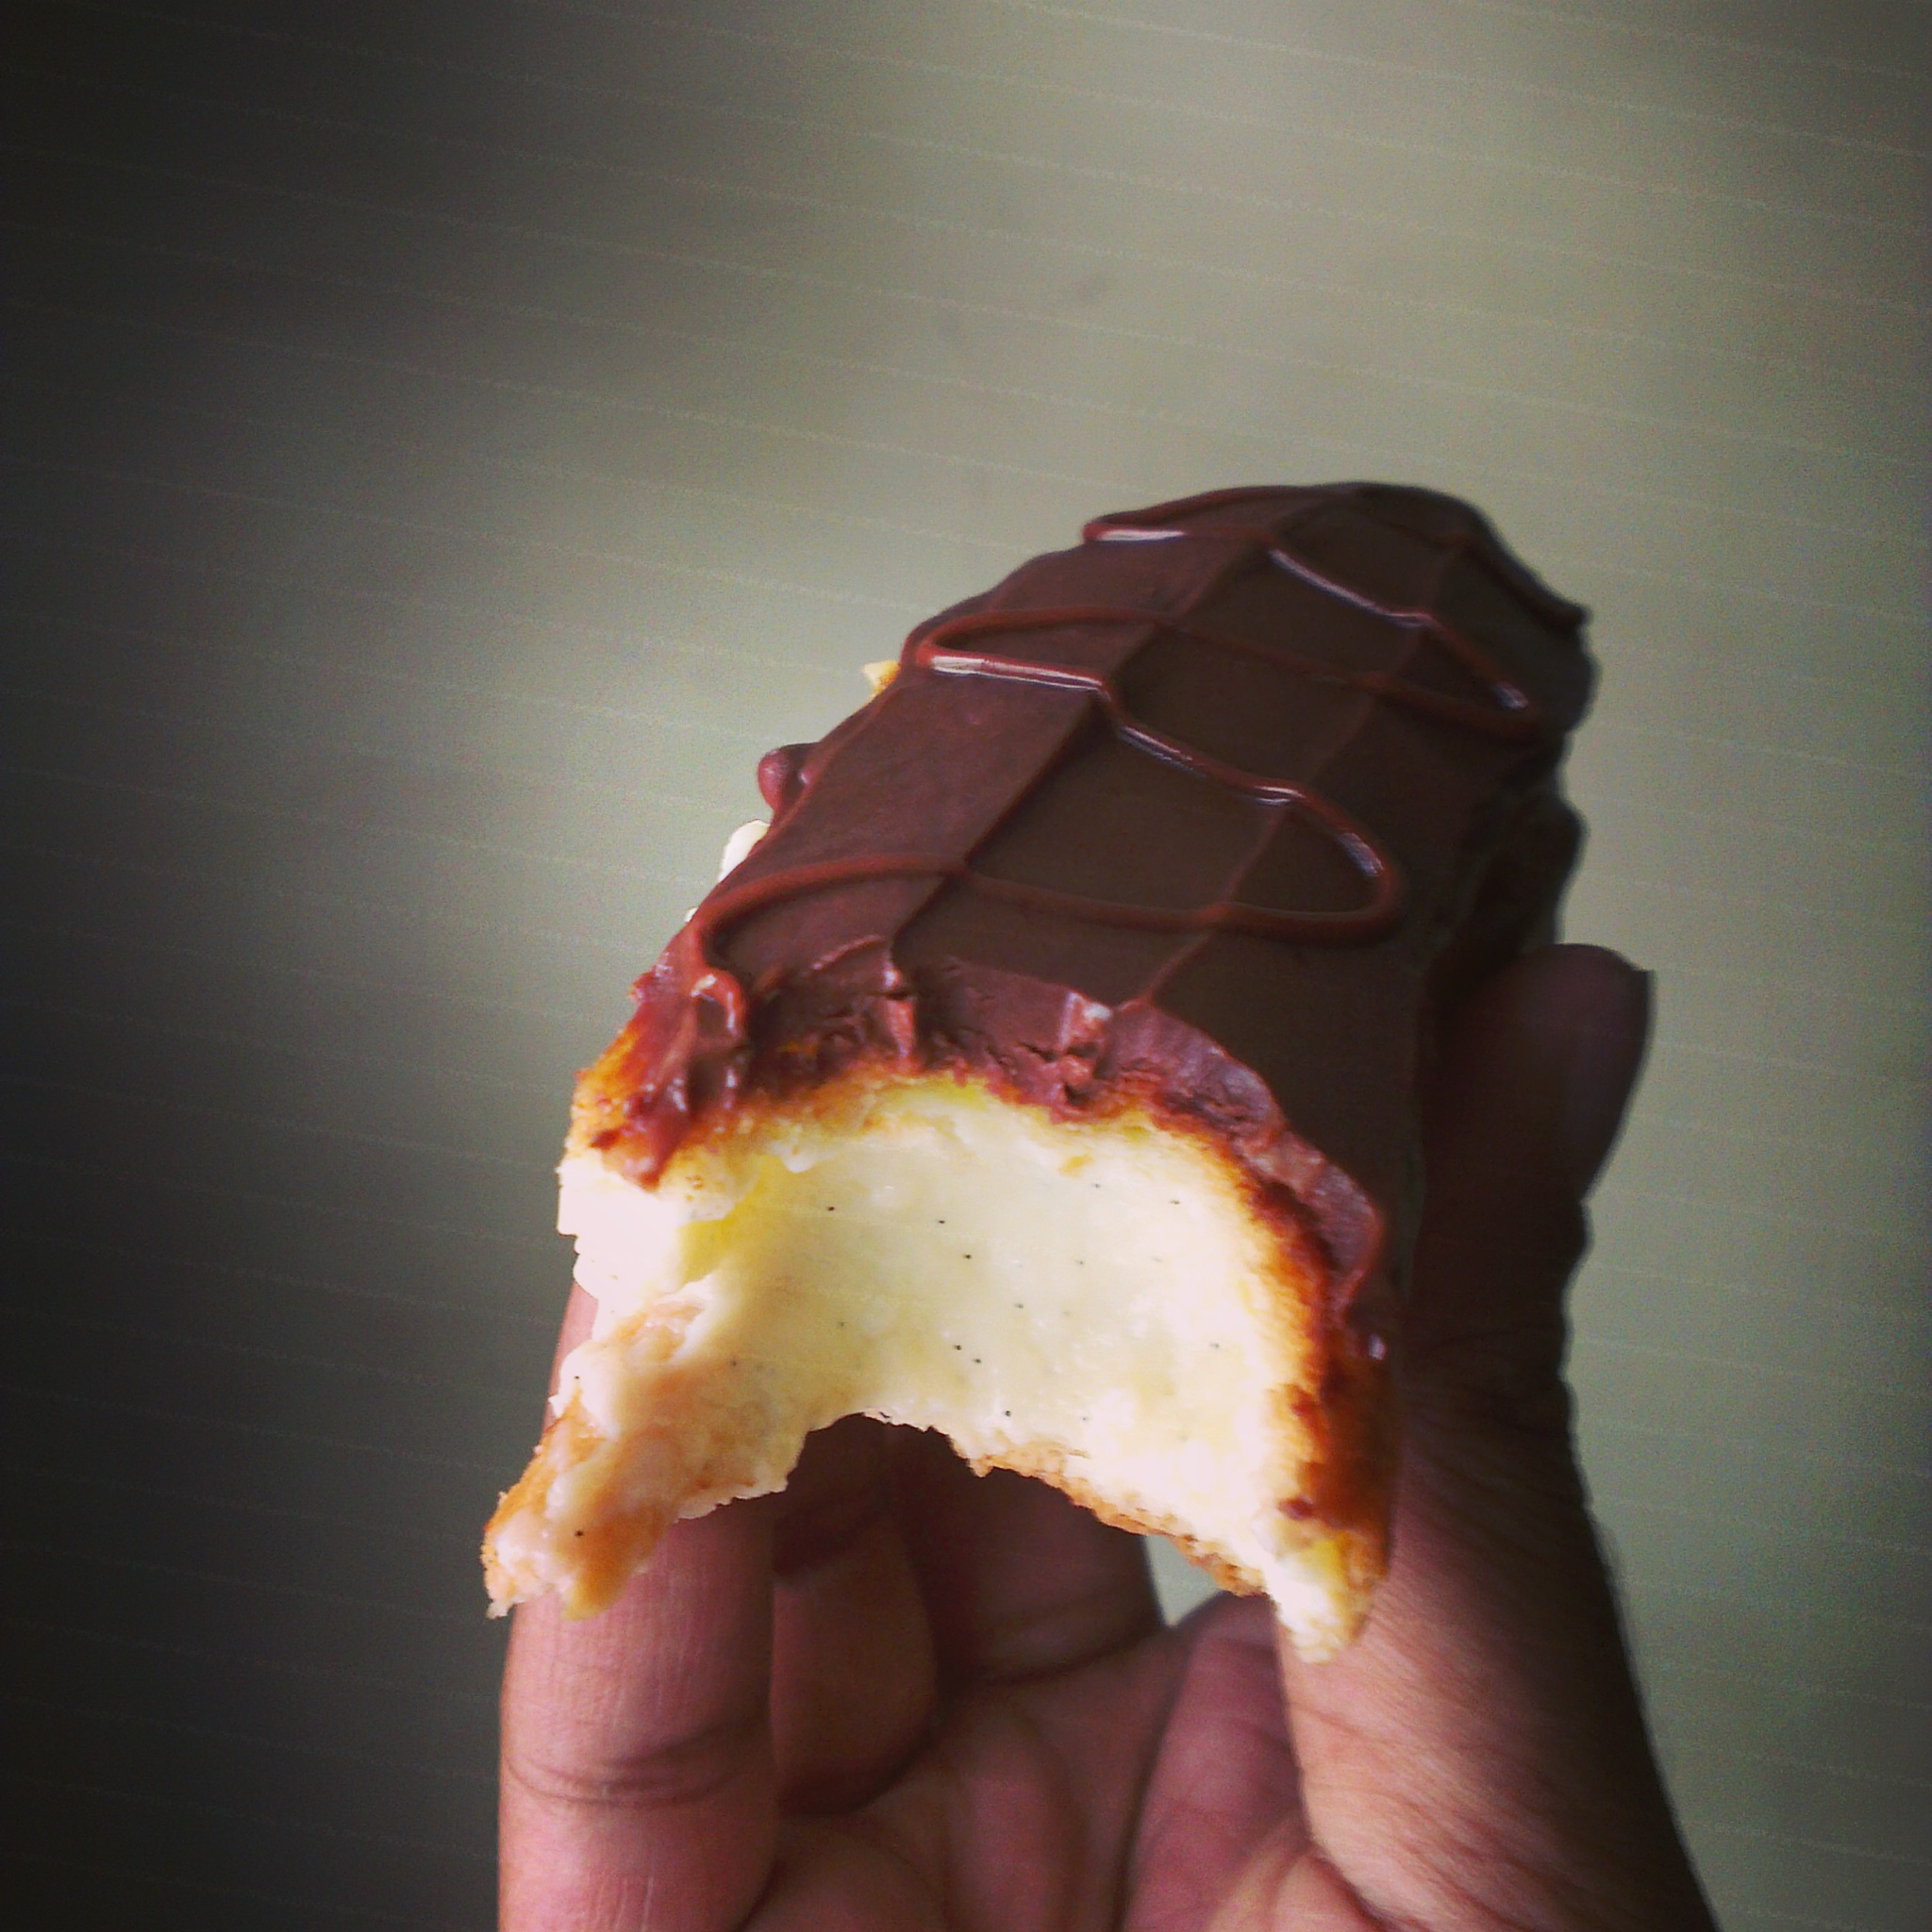 Chocolate Eclair Cross Section